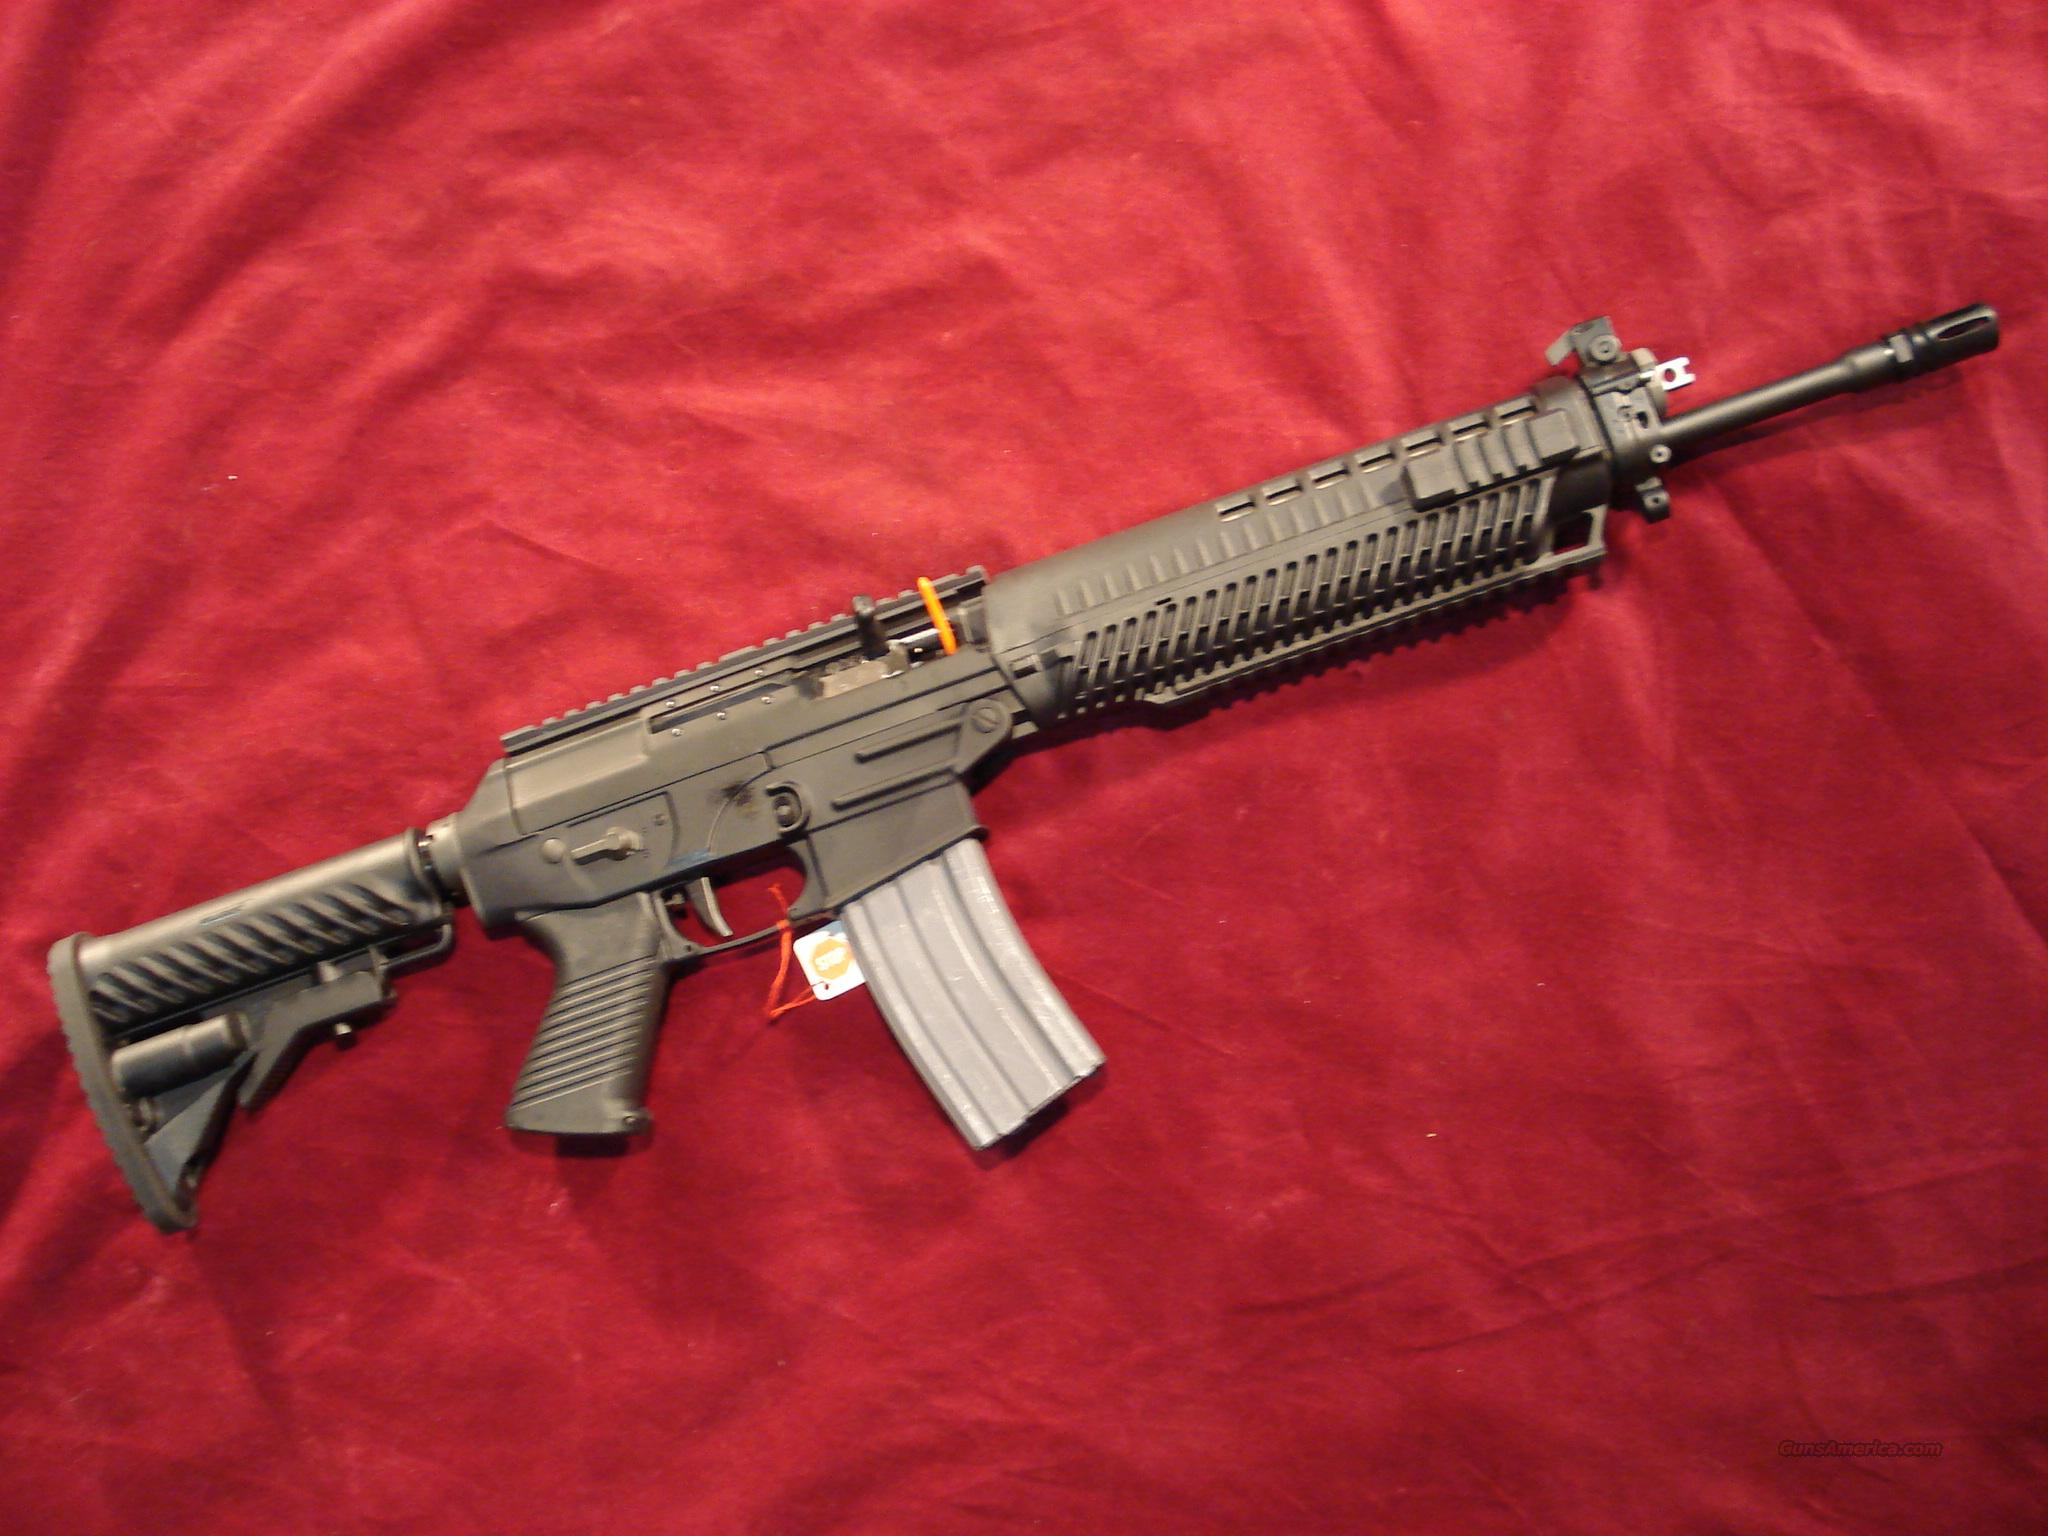 SIGARMS 556 CARBINE RIFLE W/ HALO SIGHT NEW   Guns > Rifles > Sigarms Rifles